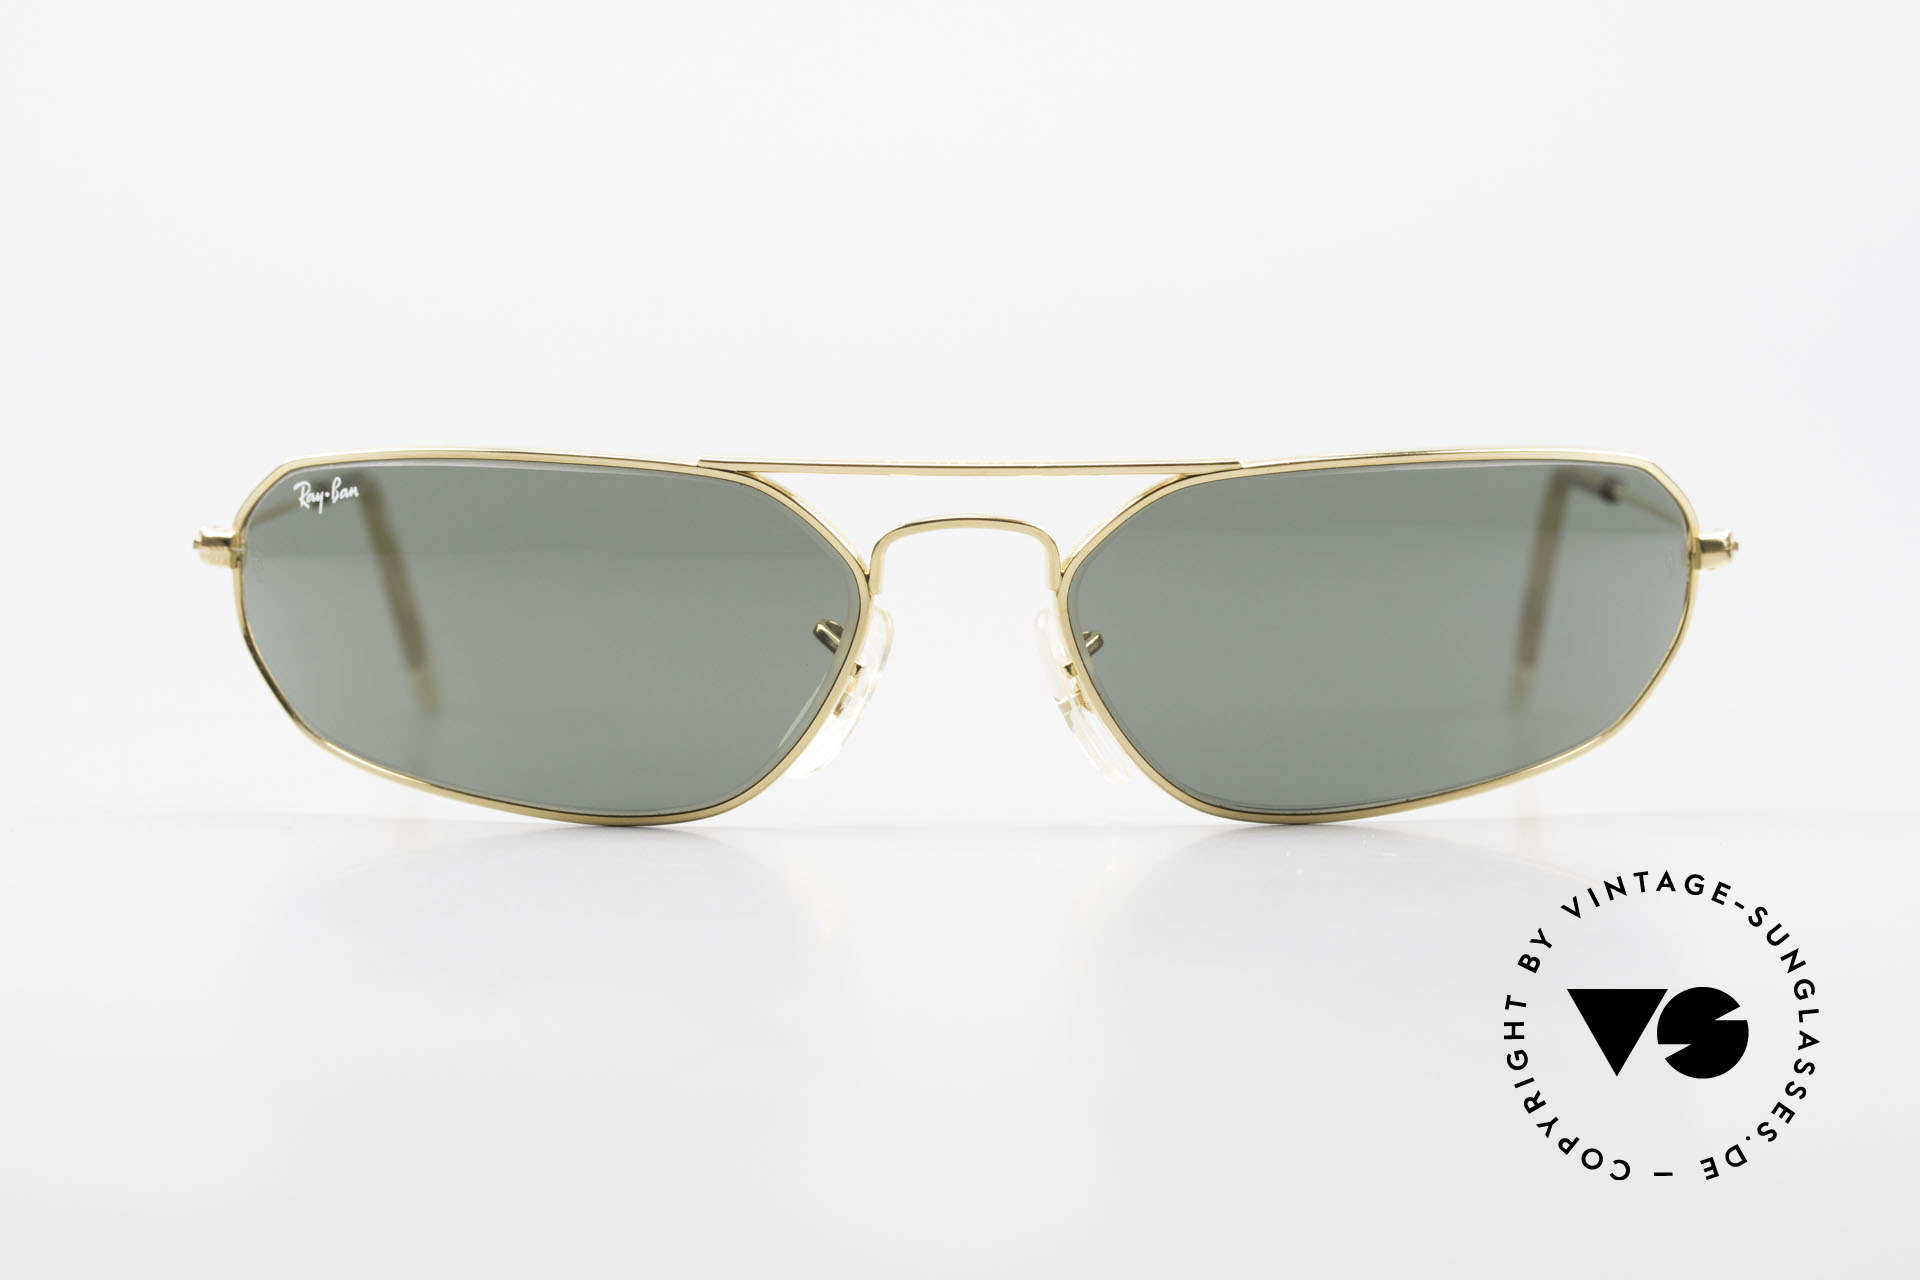 Ray Ban Fugitives Hexagon 90's Ray-Ban Bausch Lomb B&L, sporty futuristic sunglasses by RAY-BAN (U.S.A.), Made for Men